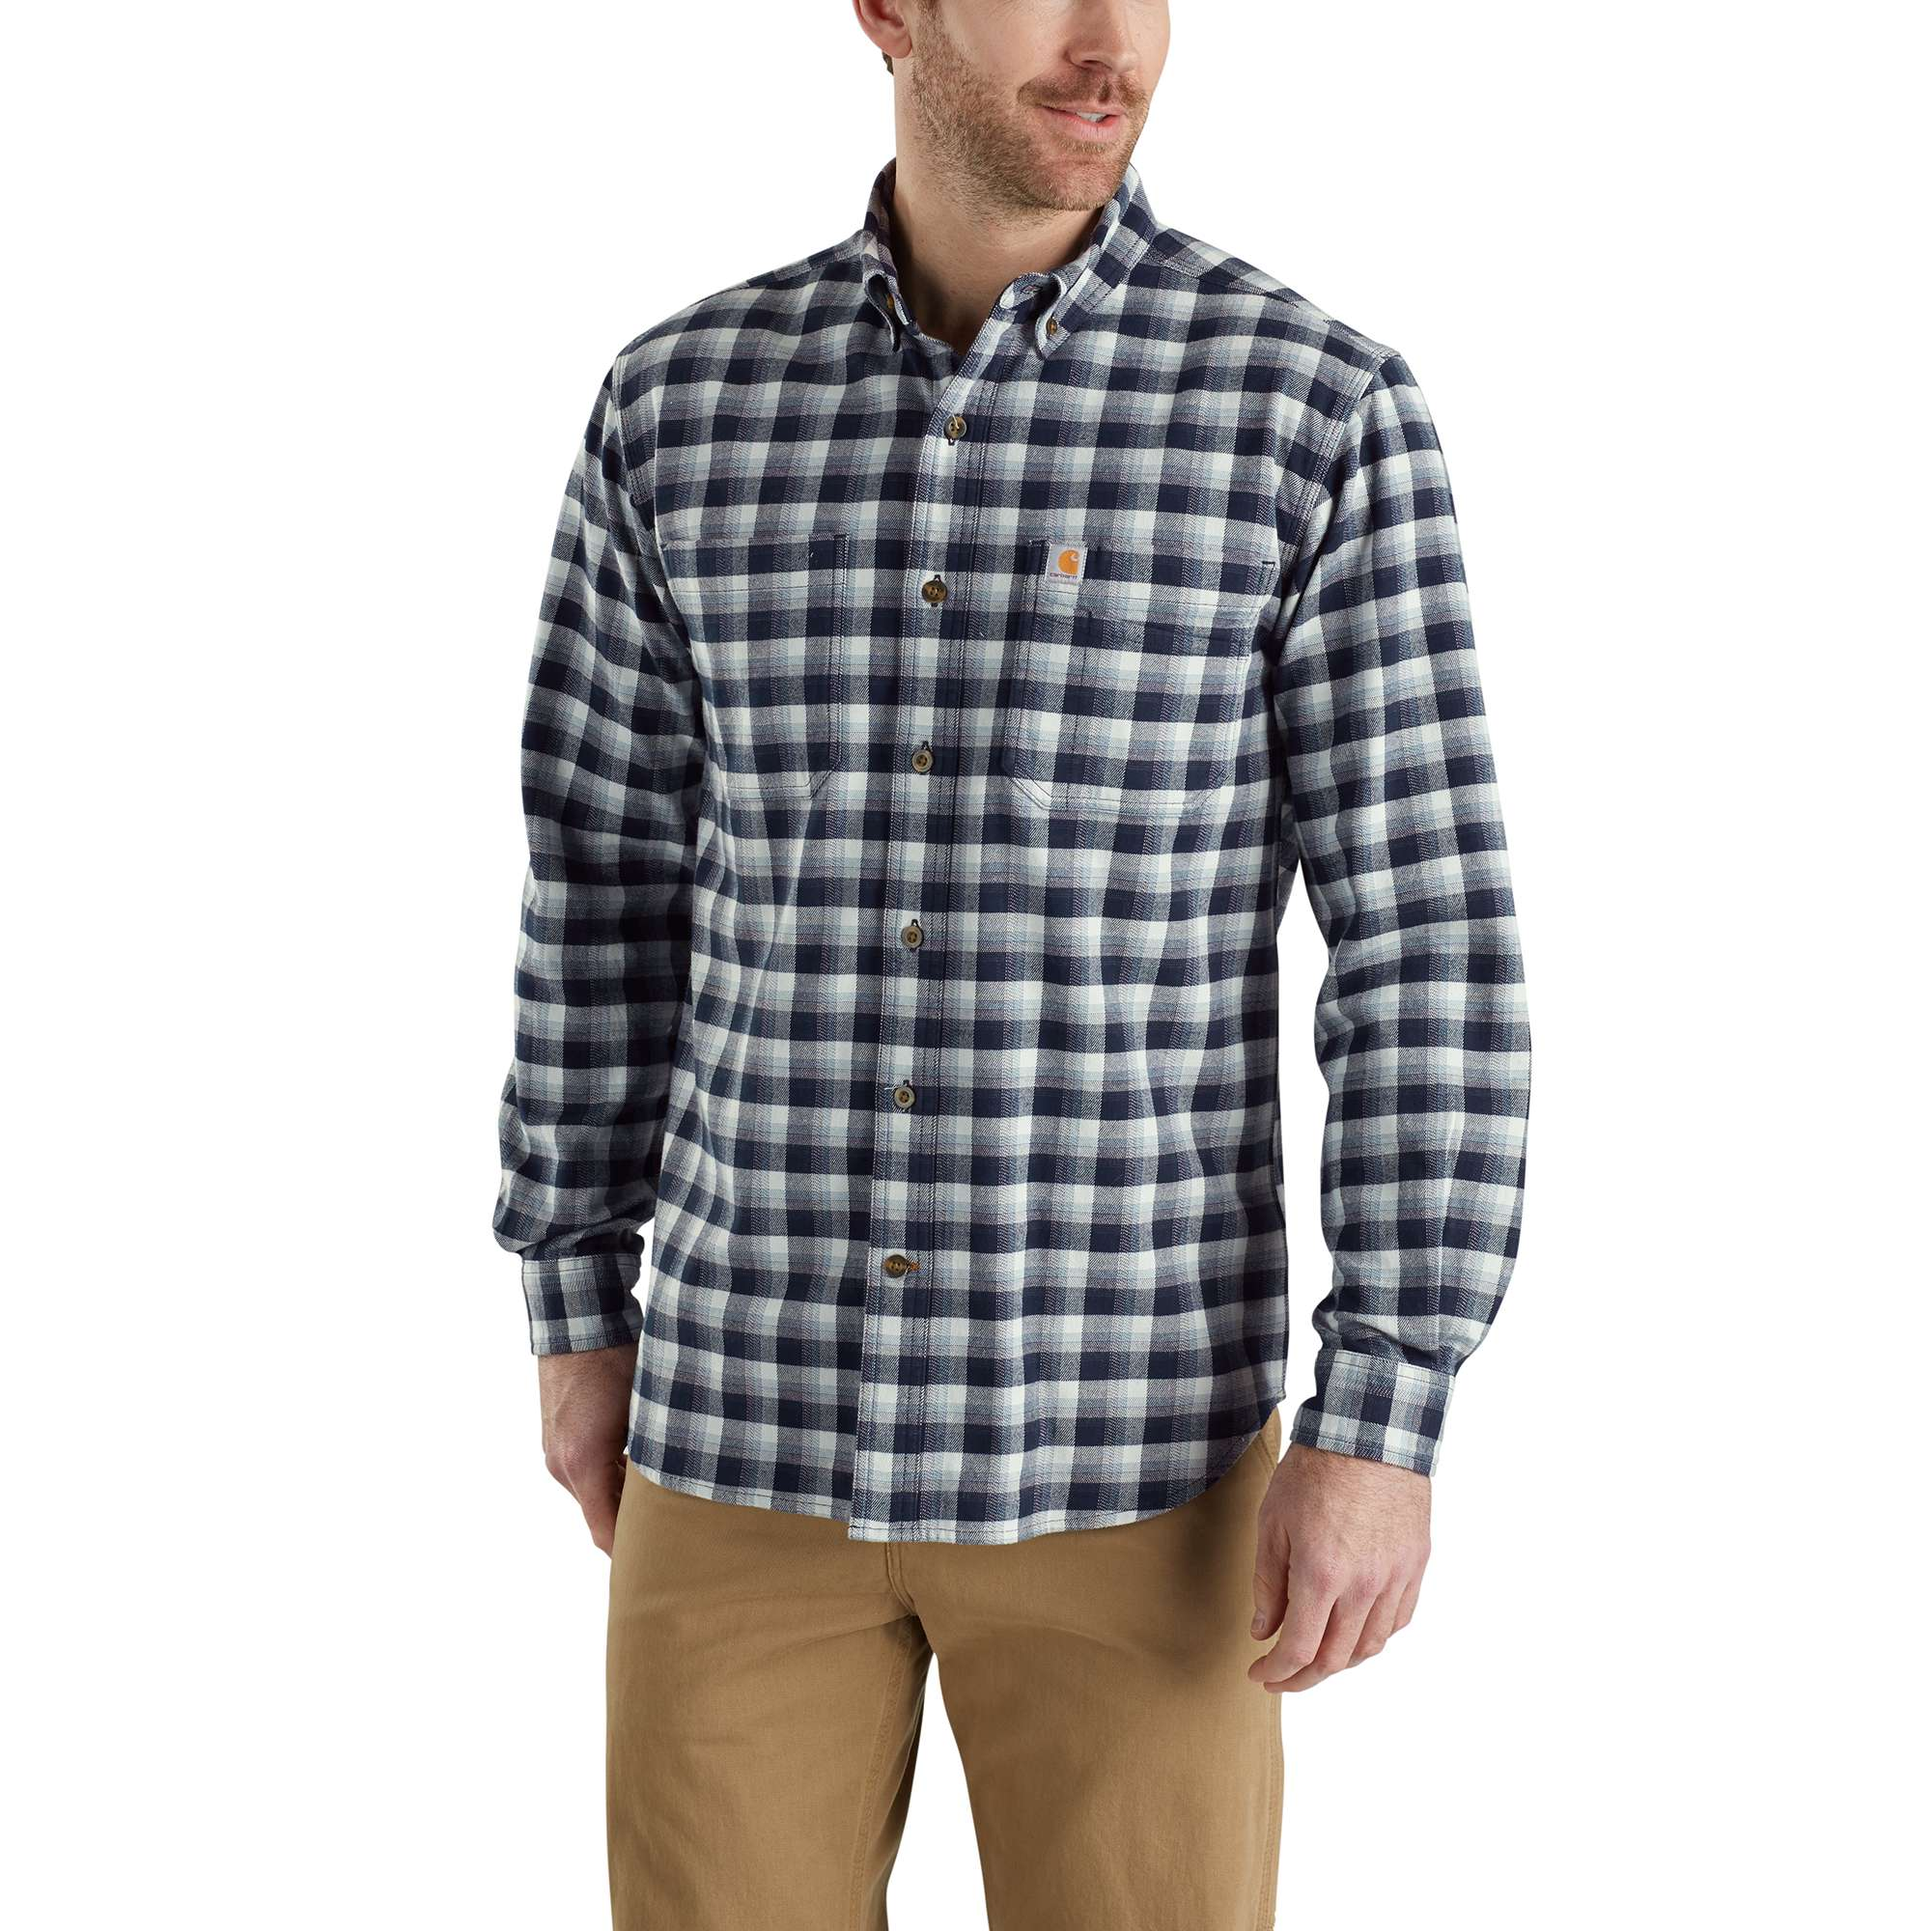 Men's Rugged Flex¨ Hamilton Plaid Long Sleeve Shirt, Navy, swatch